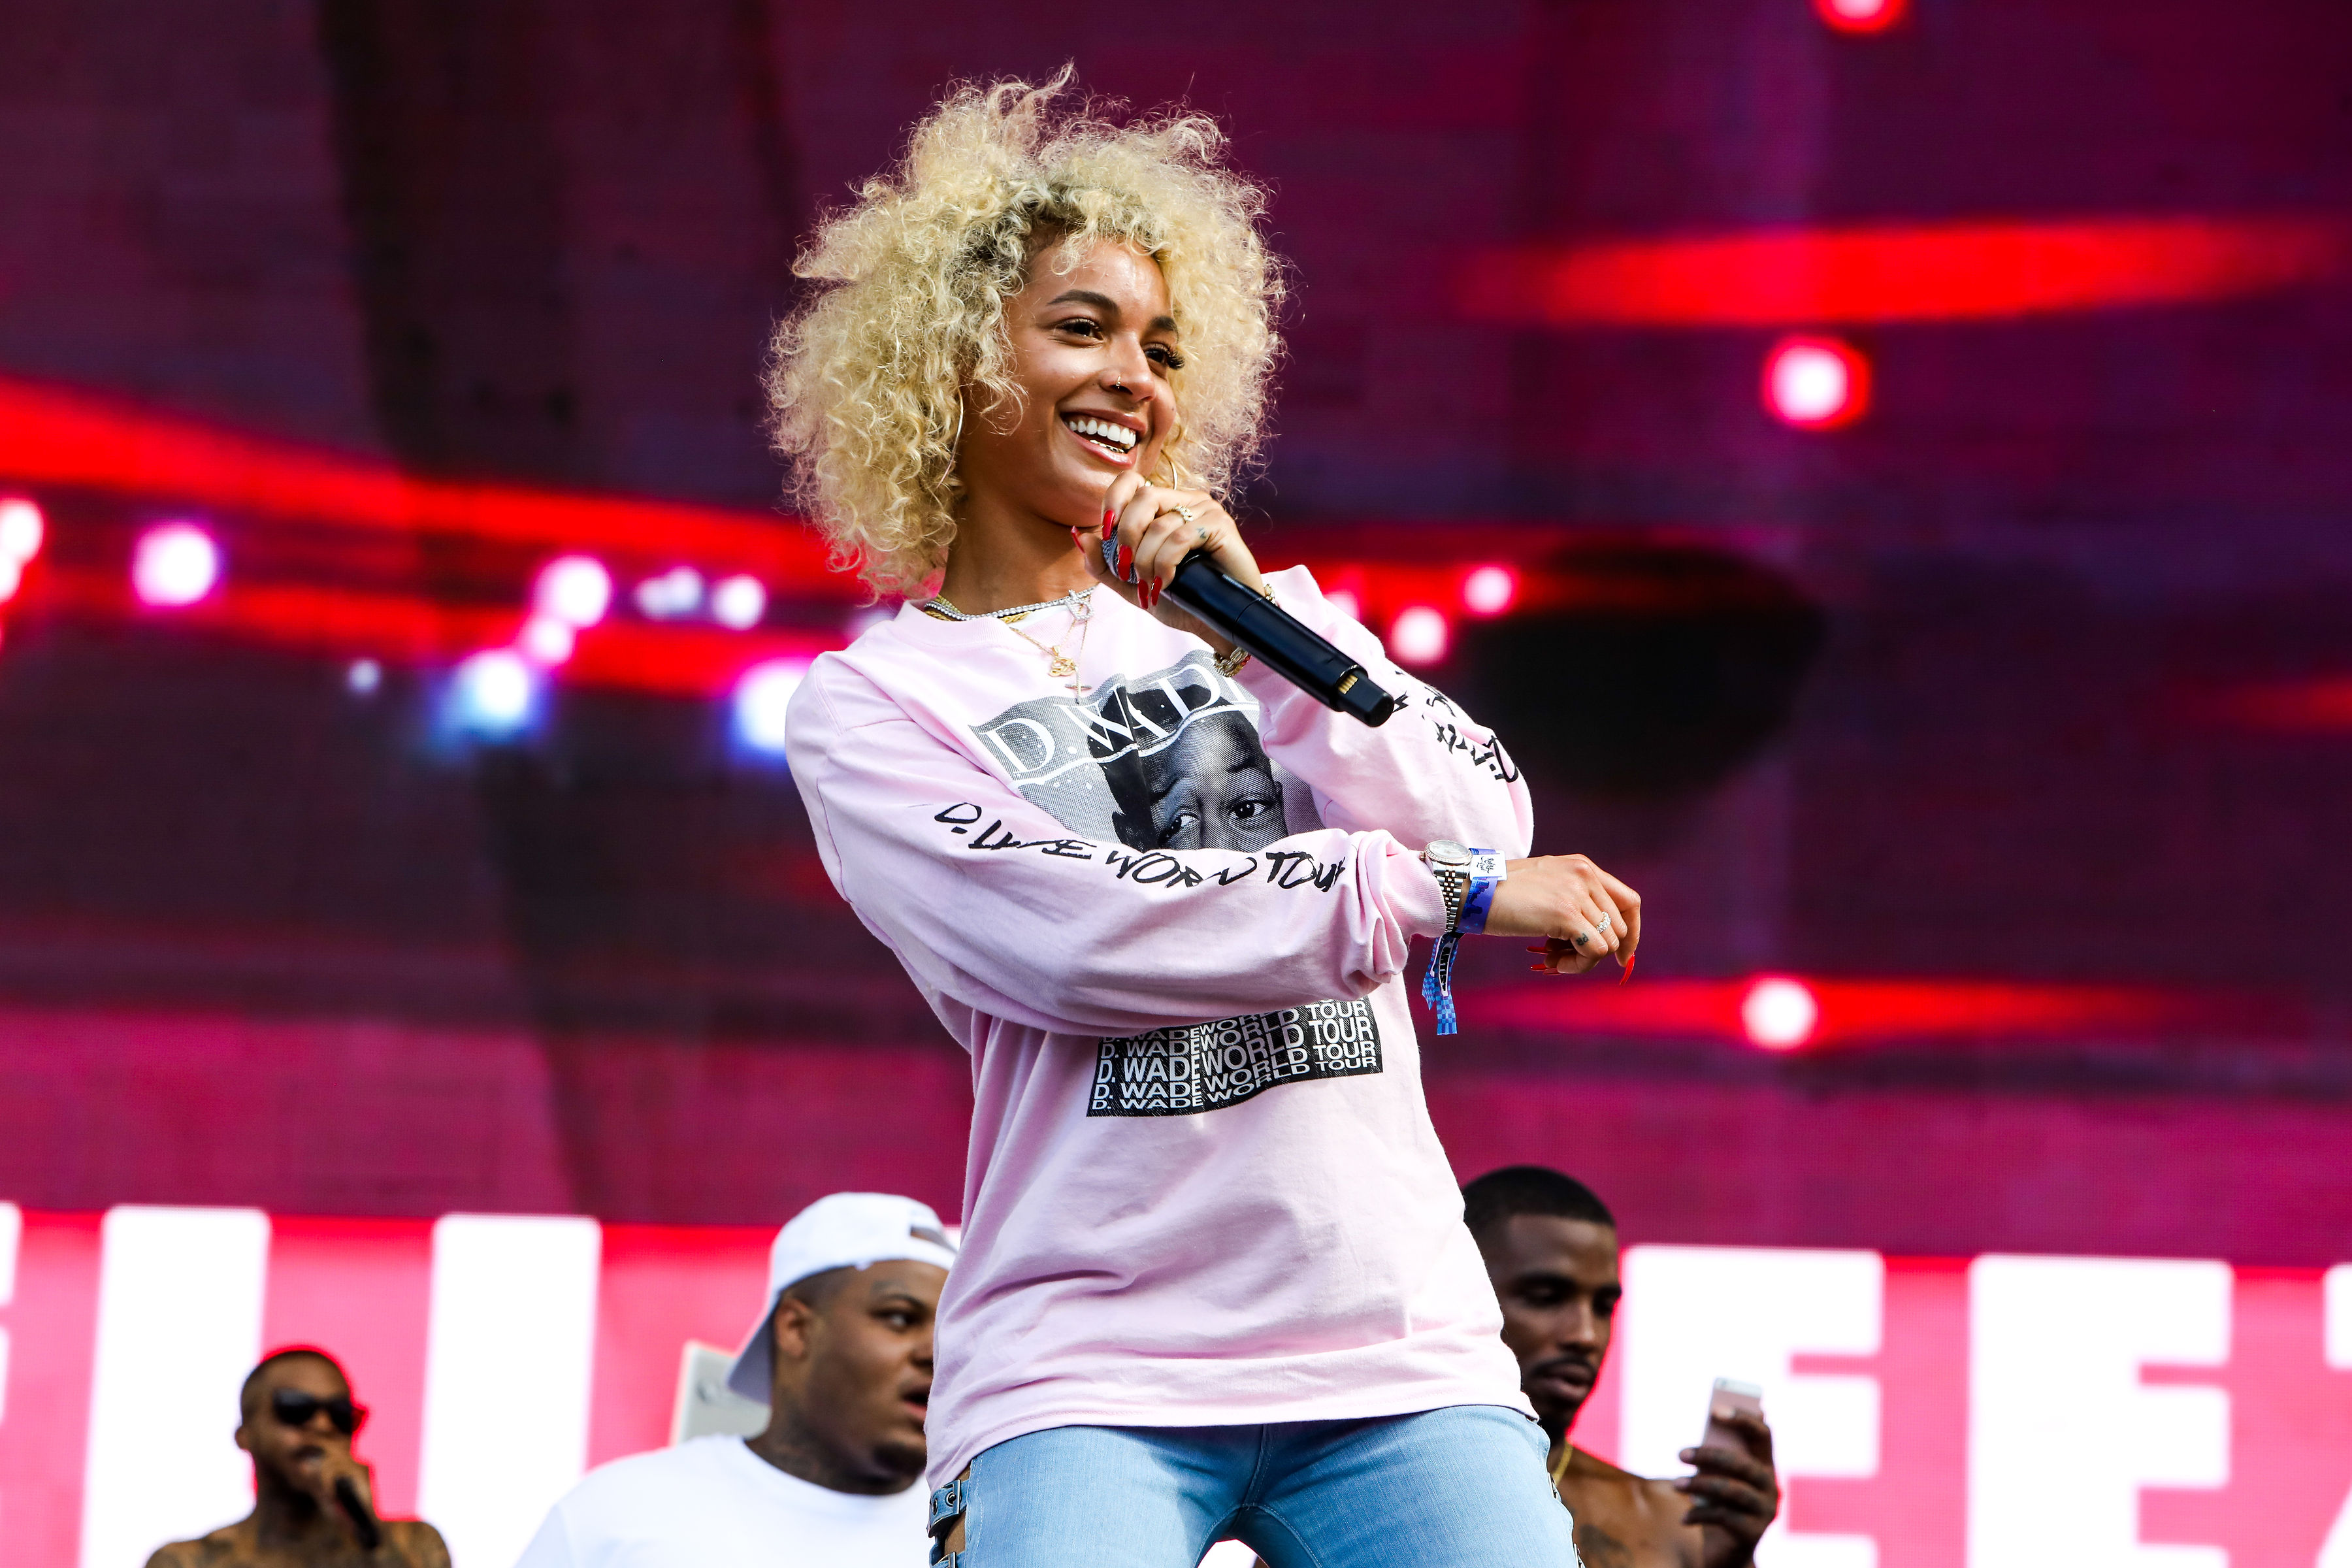 DaniLeigh Is Trending For Her New Light-Skinned Anthem And Fans Are UPSET